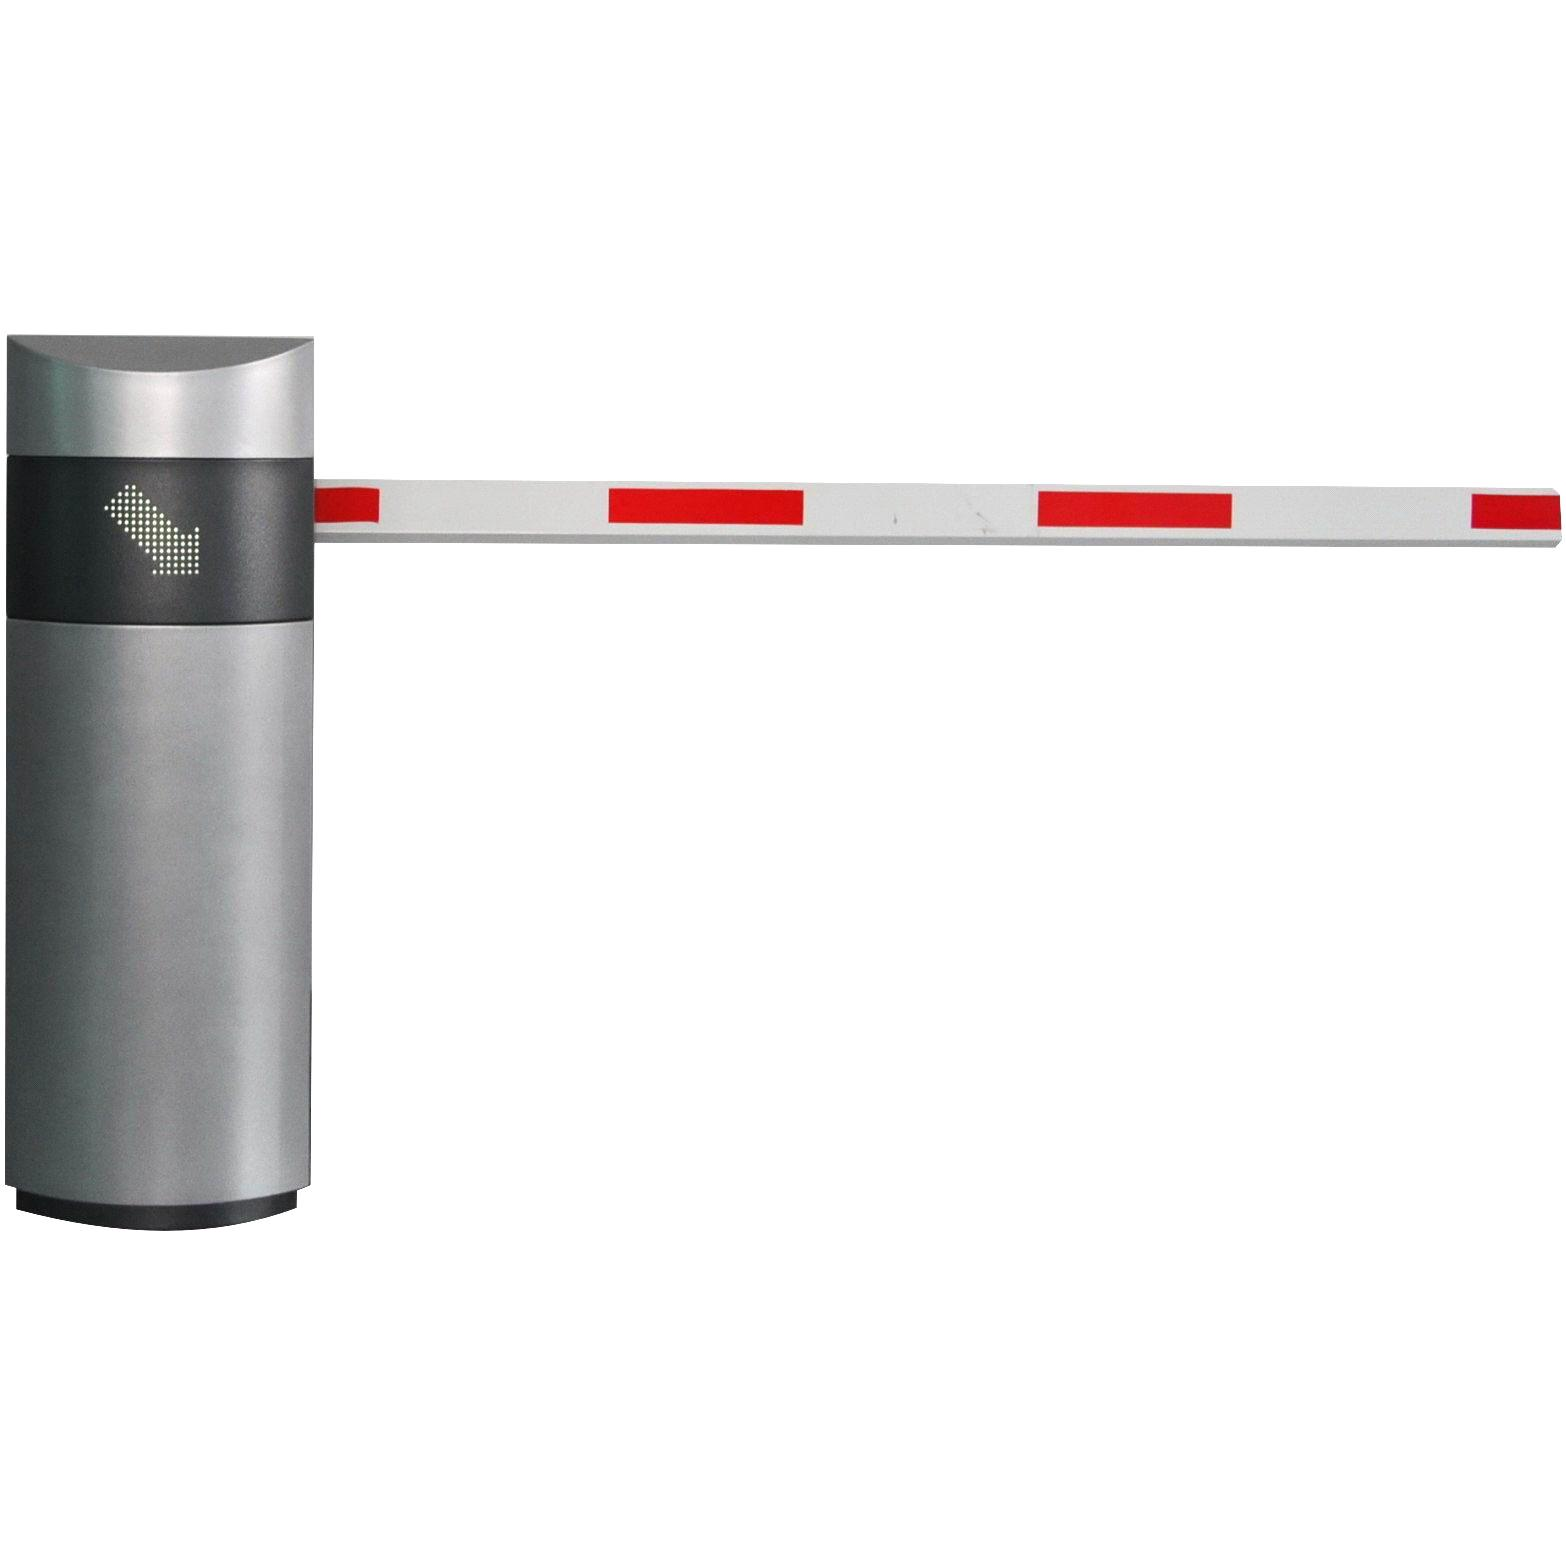 High speed barrier gate operator with arm auto reverse and